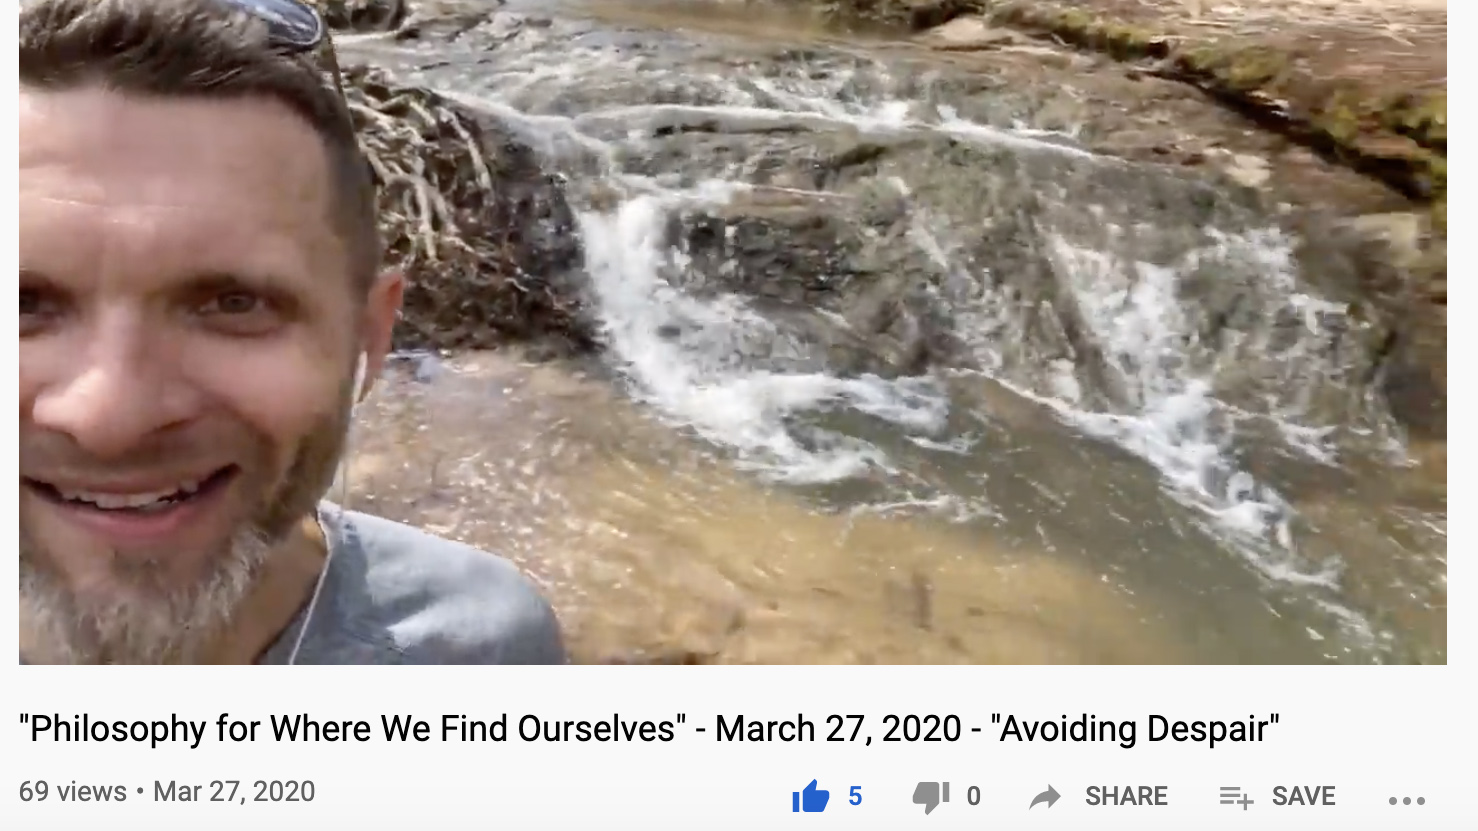 A man with a goatee shoots a video selfie in front of a large creek with rapids.